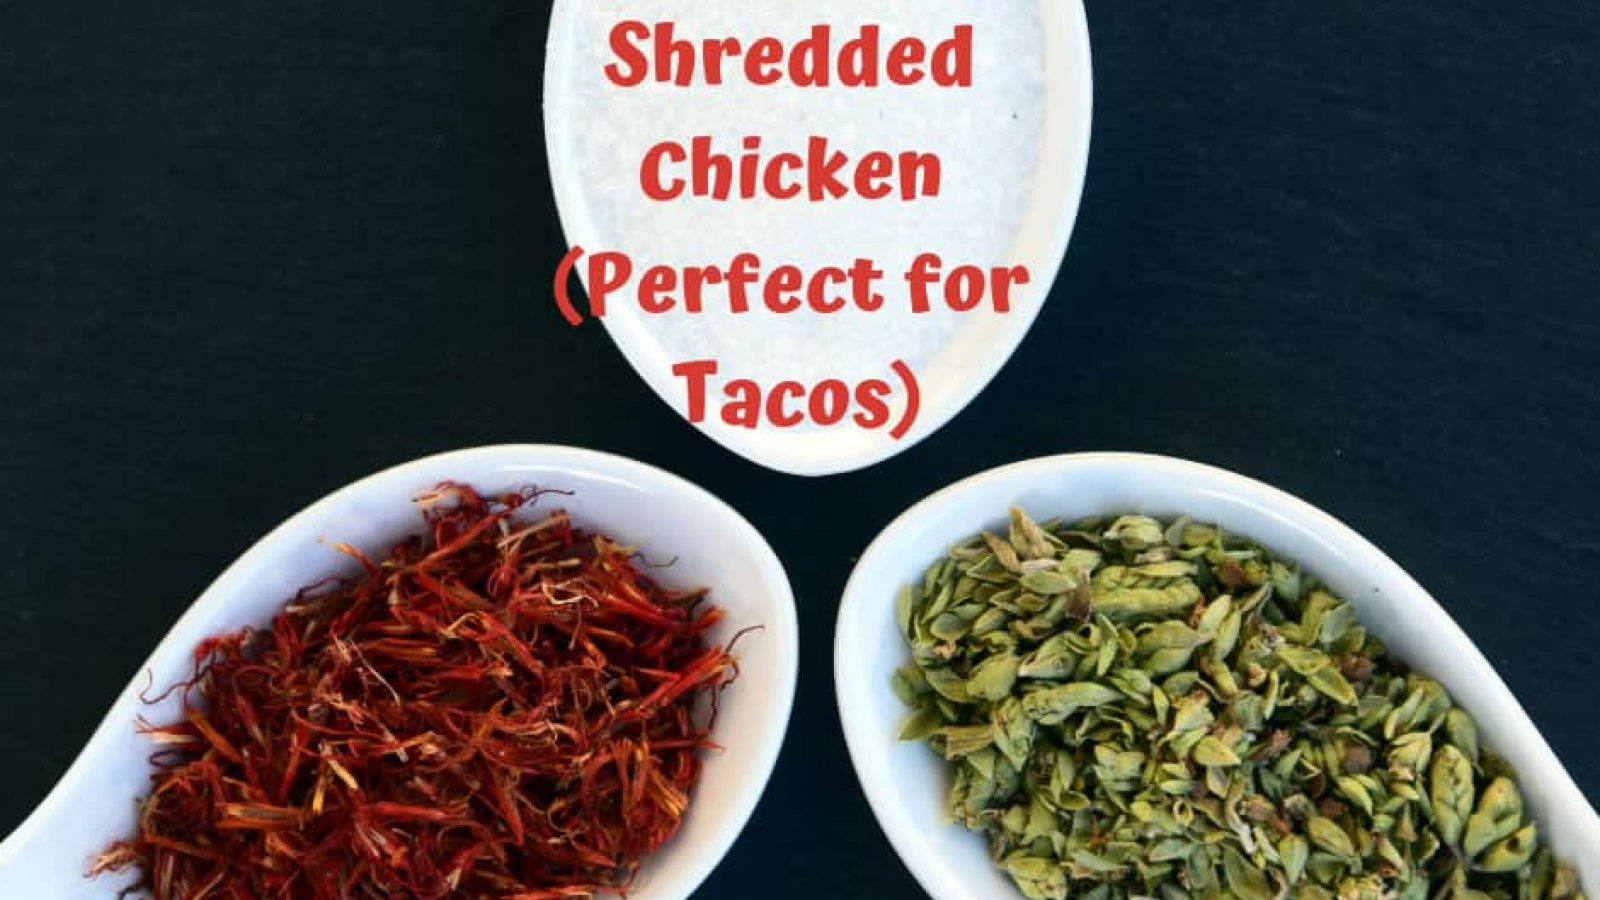 Spicy Crockpot Shredded Chicken (perfect for tacos!)